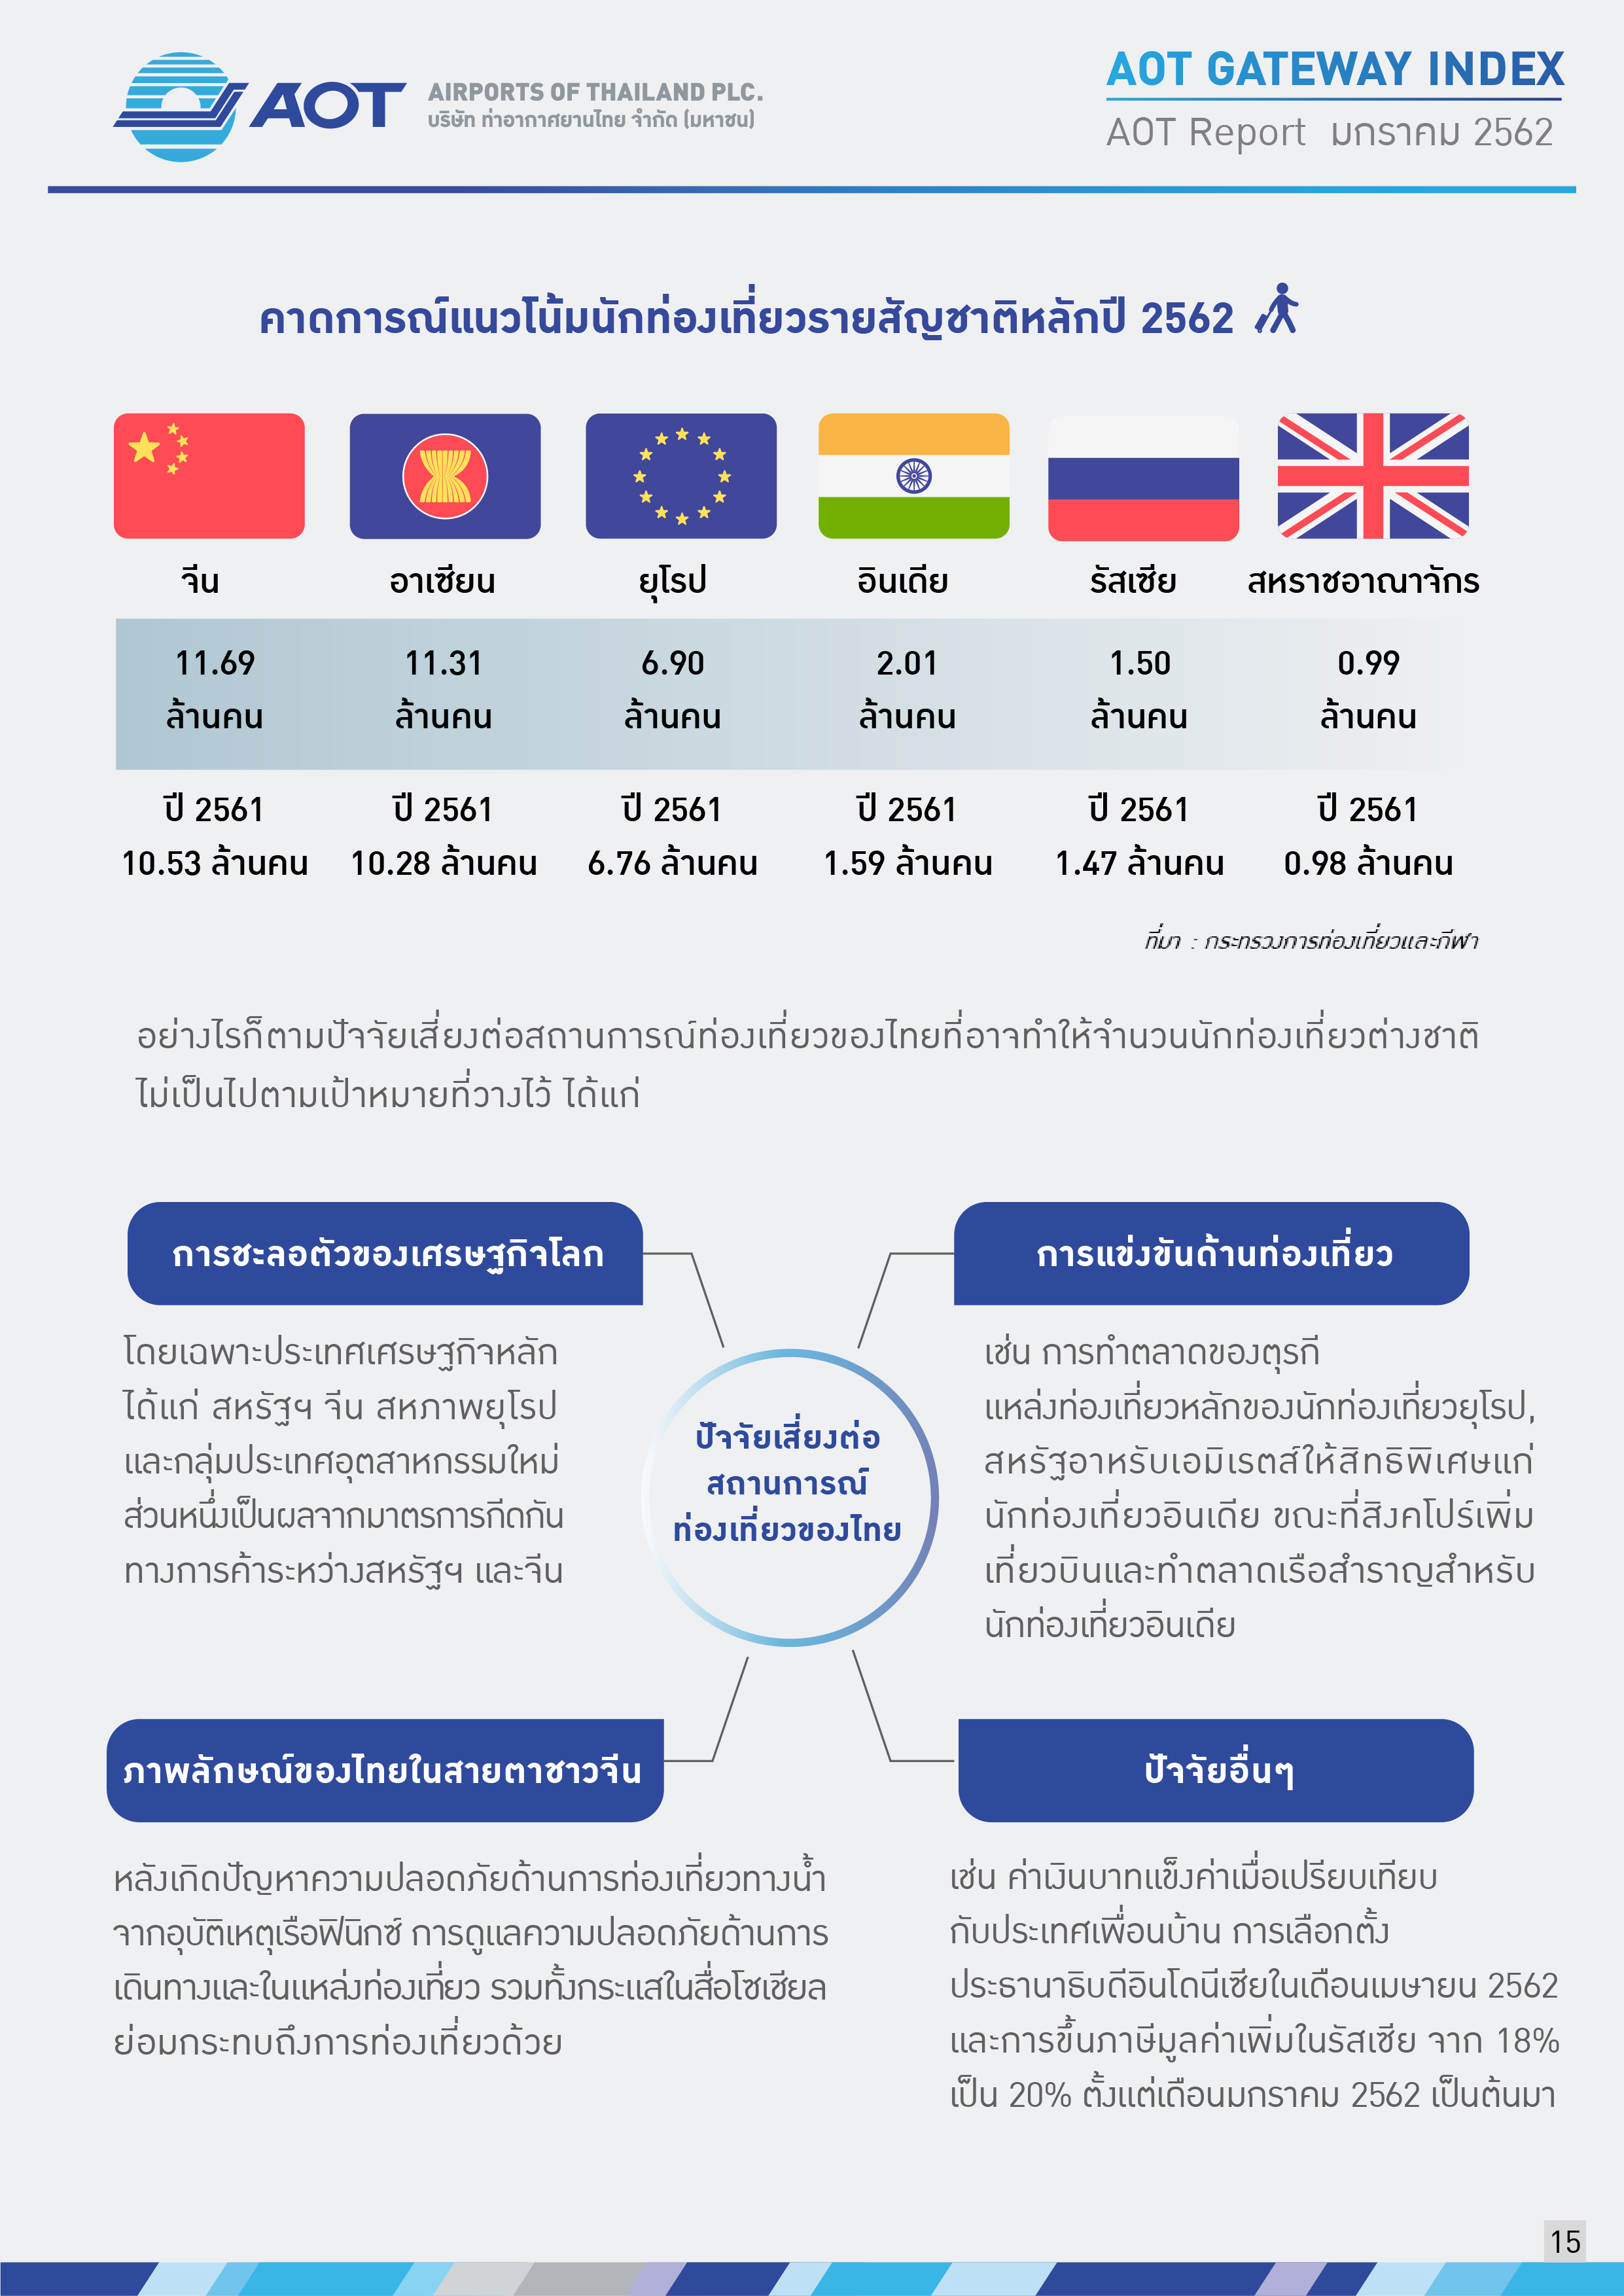 AOTcontent2019_Index_02_เศรษฐกิจโลก_V5_20190401_Page15